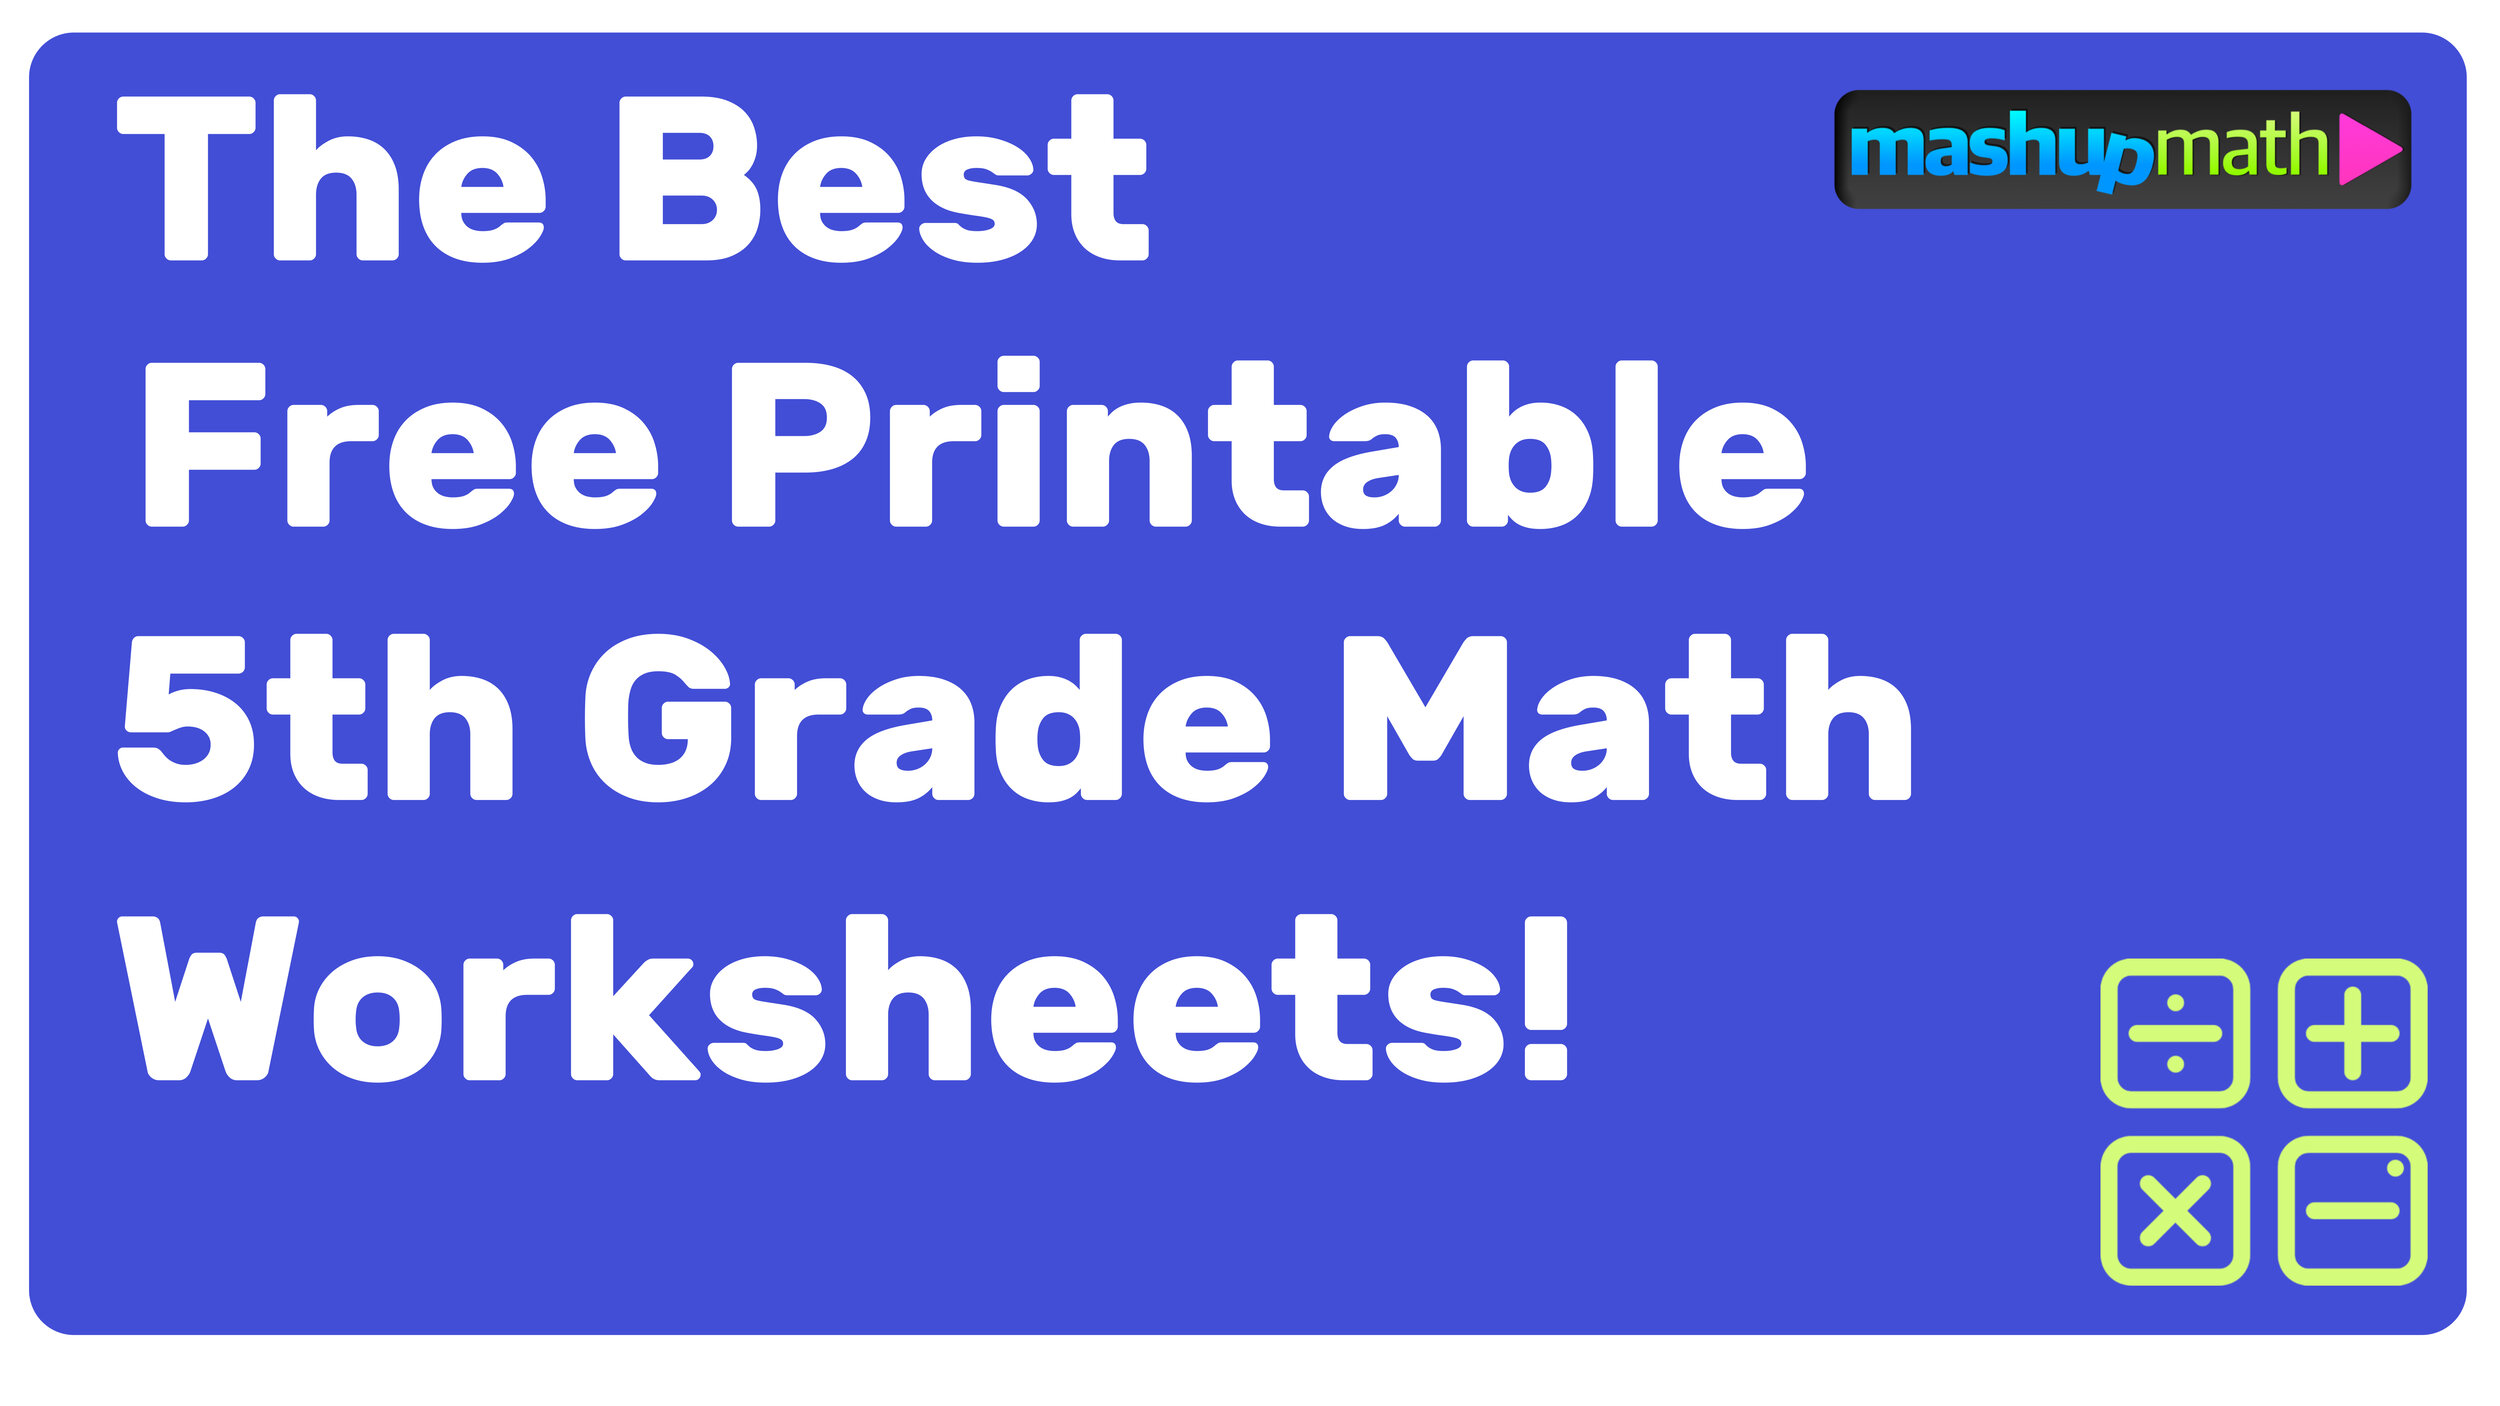 medium resolution of Free Printable 5th Grade Math Worksheets (with Answers!) — Mashup Math